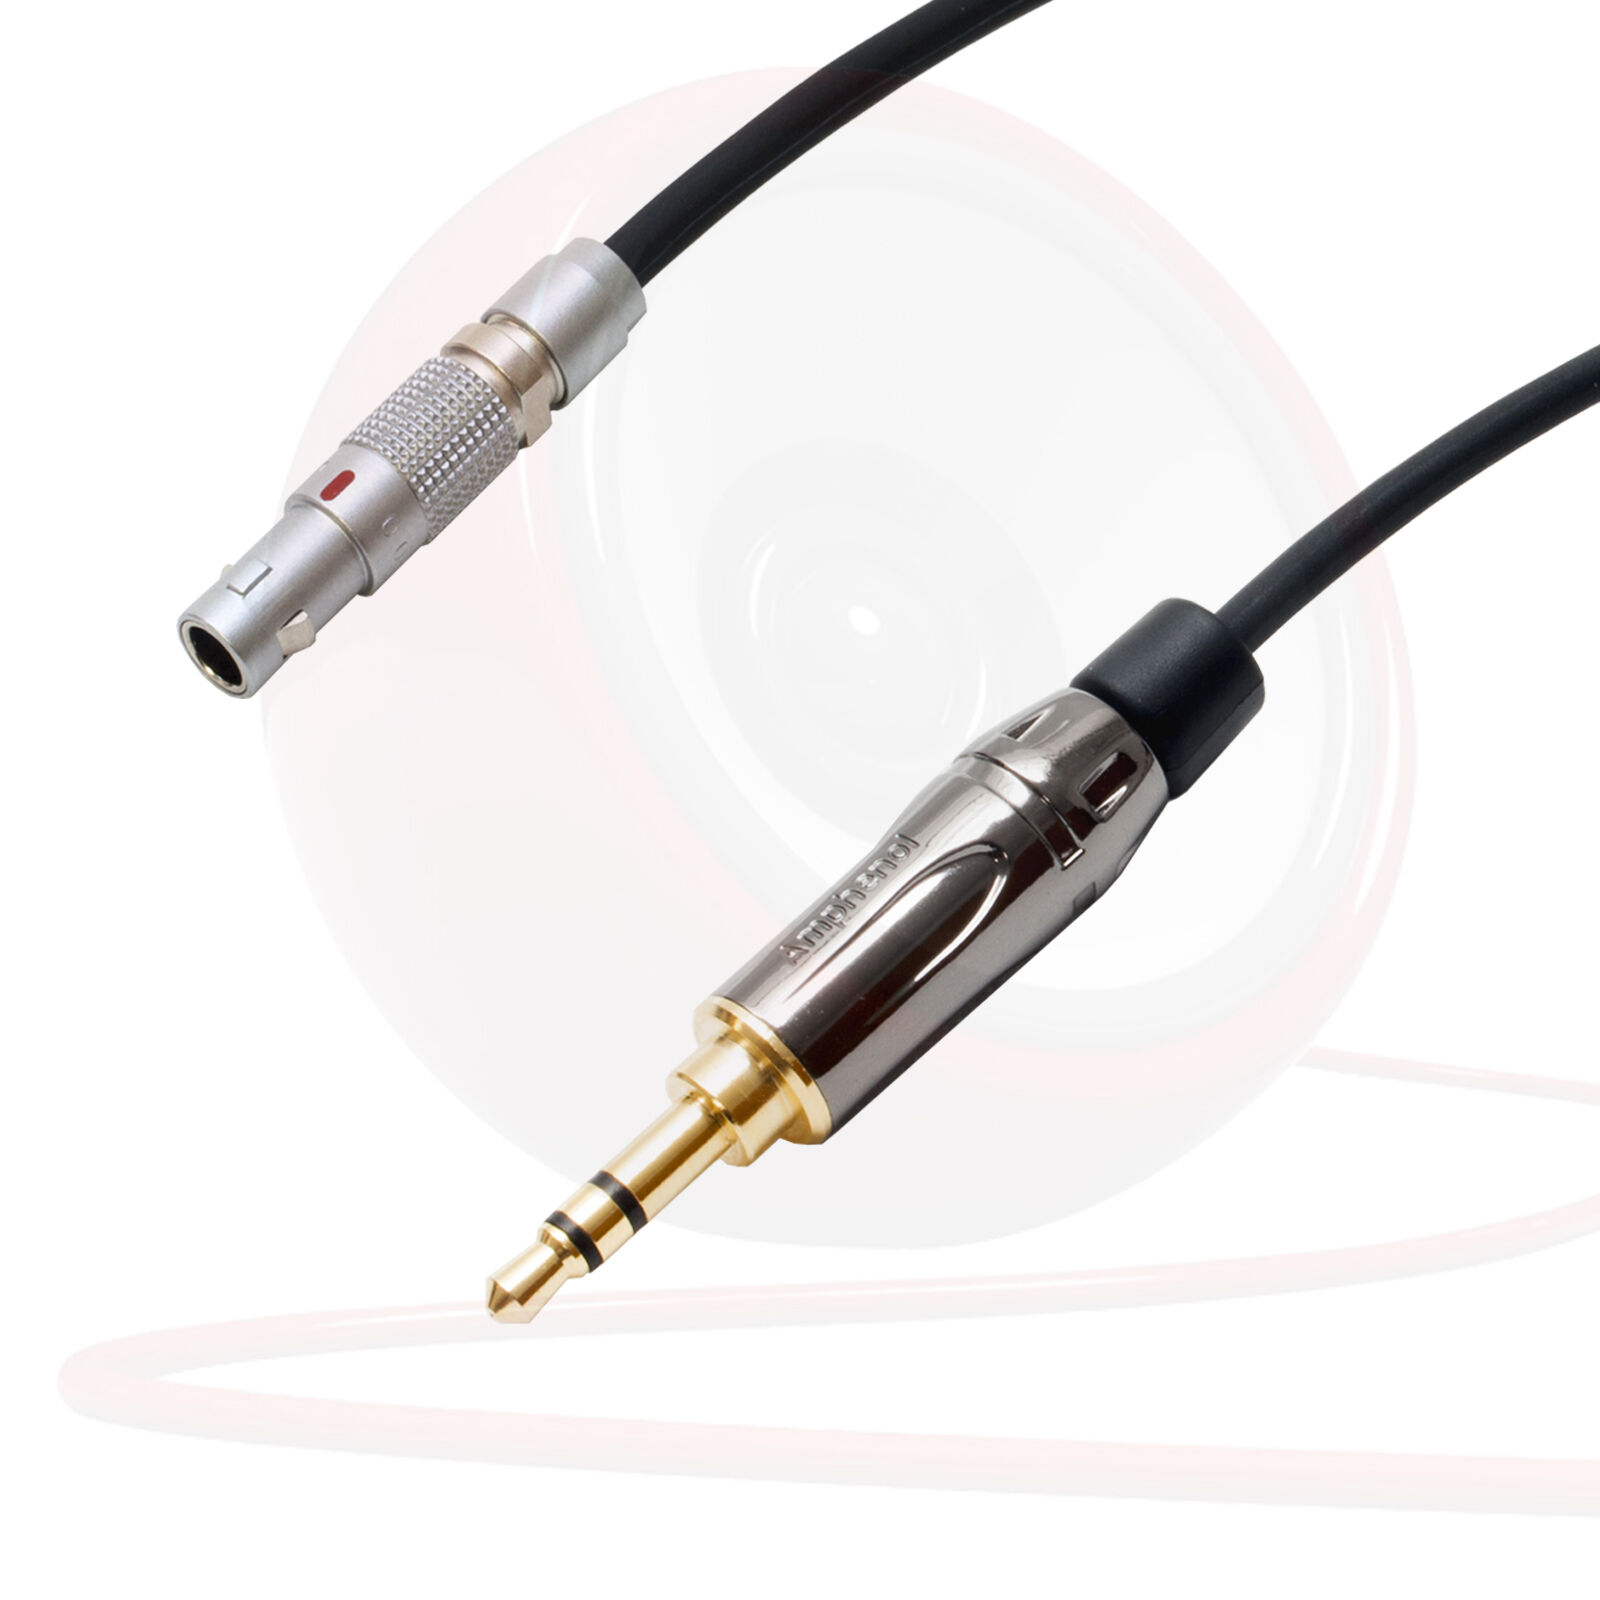 AKG K812 Headphone Cord. Replacement Lead. Quality Belden Star Quad Cable